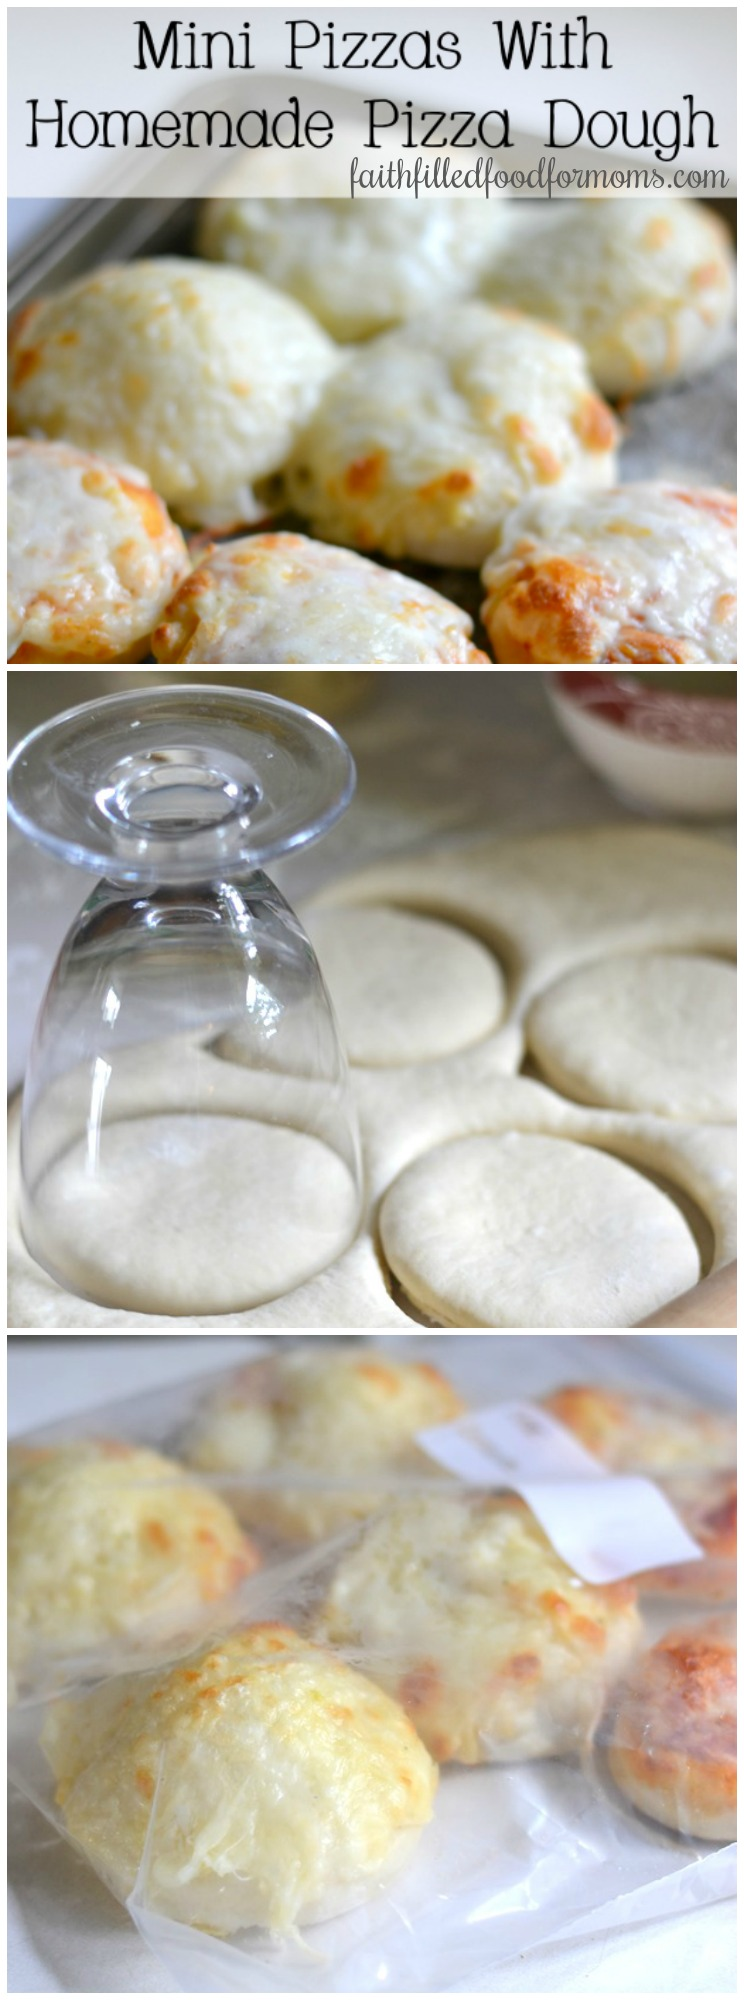 Mini Pizzas with homemade pizza dough. Make a bunch and freeze for later! Makes a great after school snack for kids! #pizzadough #pizza #freezermeal